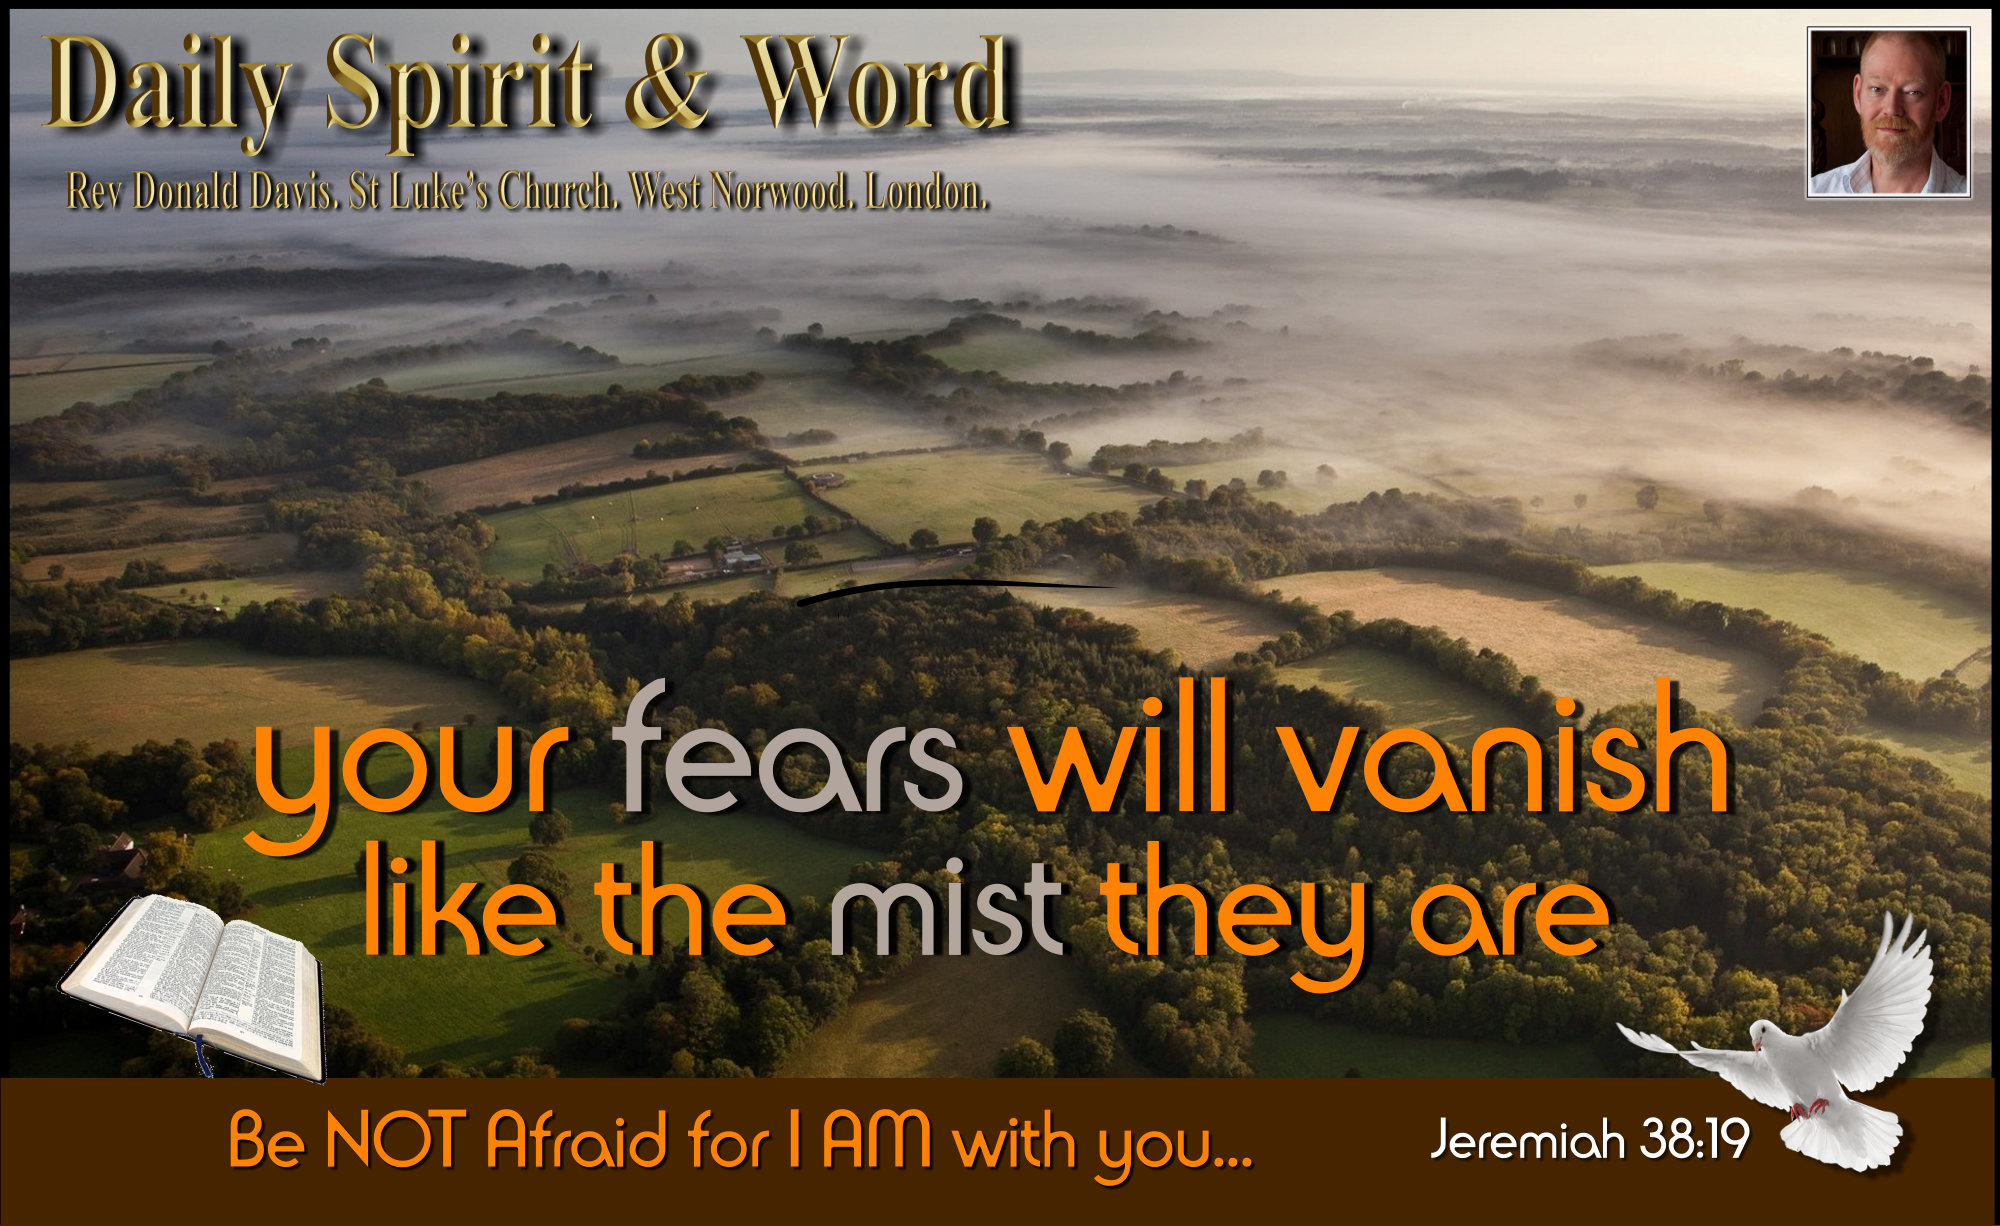 Your fears will vanish like the mist they are